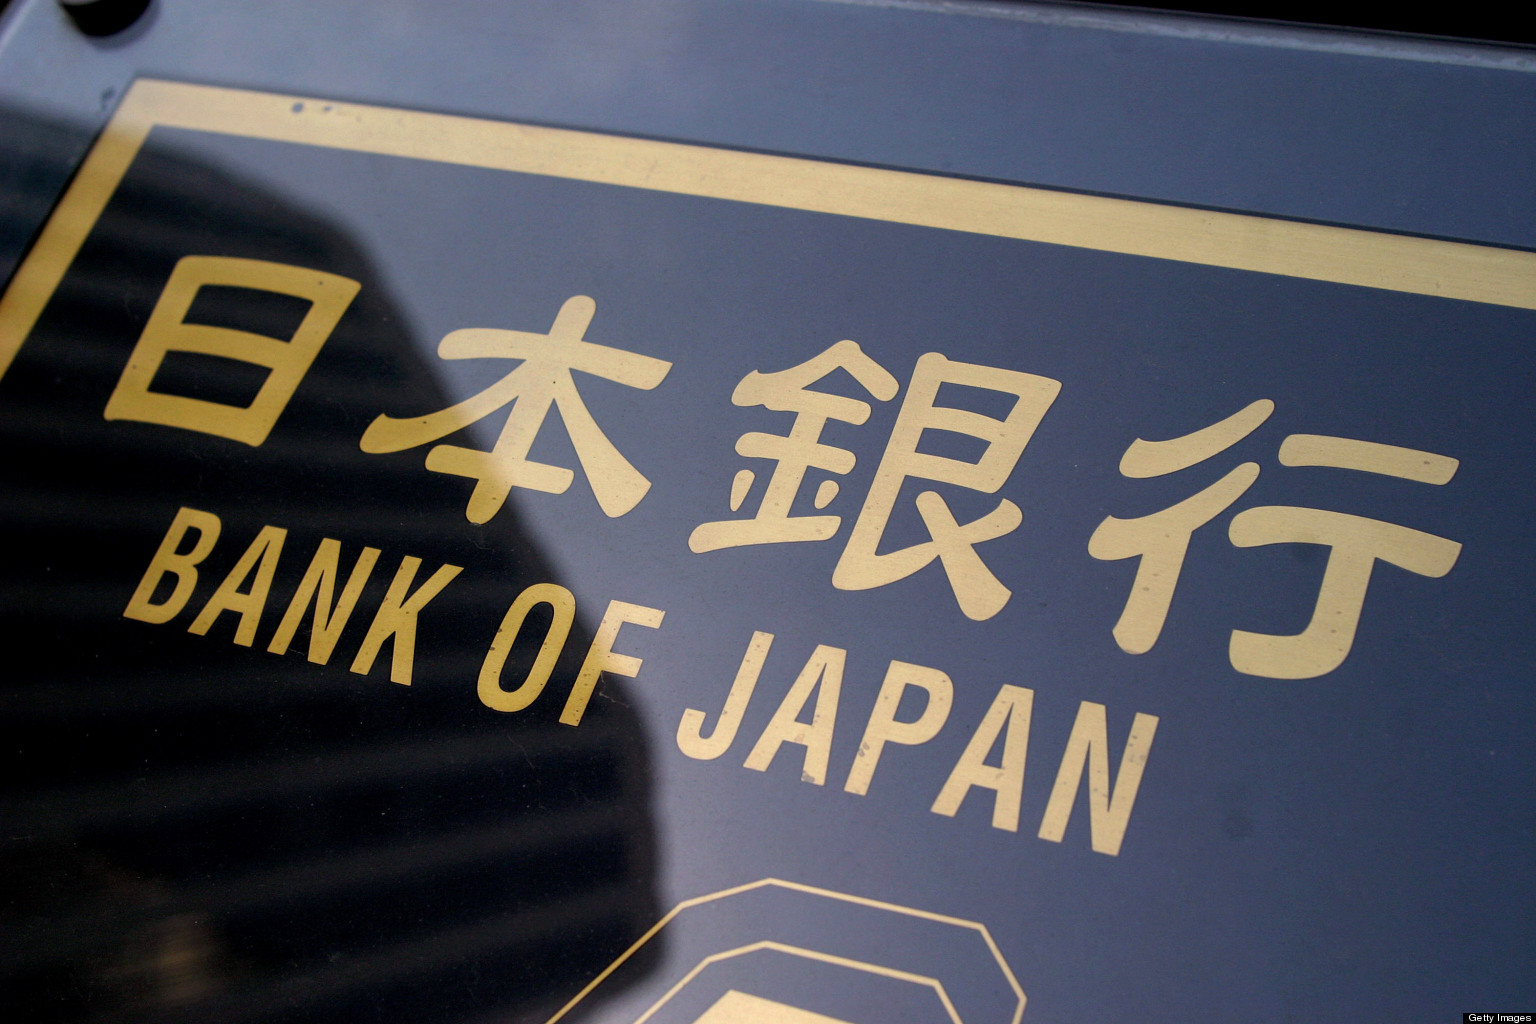 http://i.huffpost.com/gen/1070170/thumbs/o-BANK-OF-JAPAN-STIMULUS-facebook.jpg